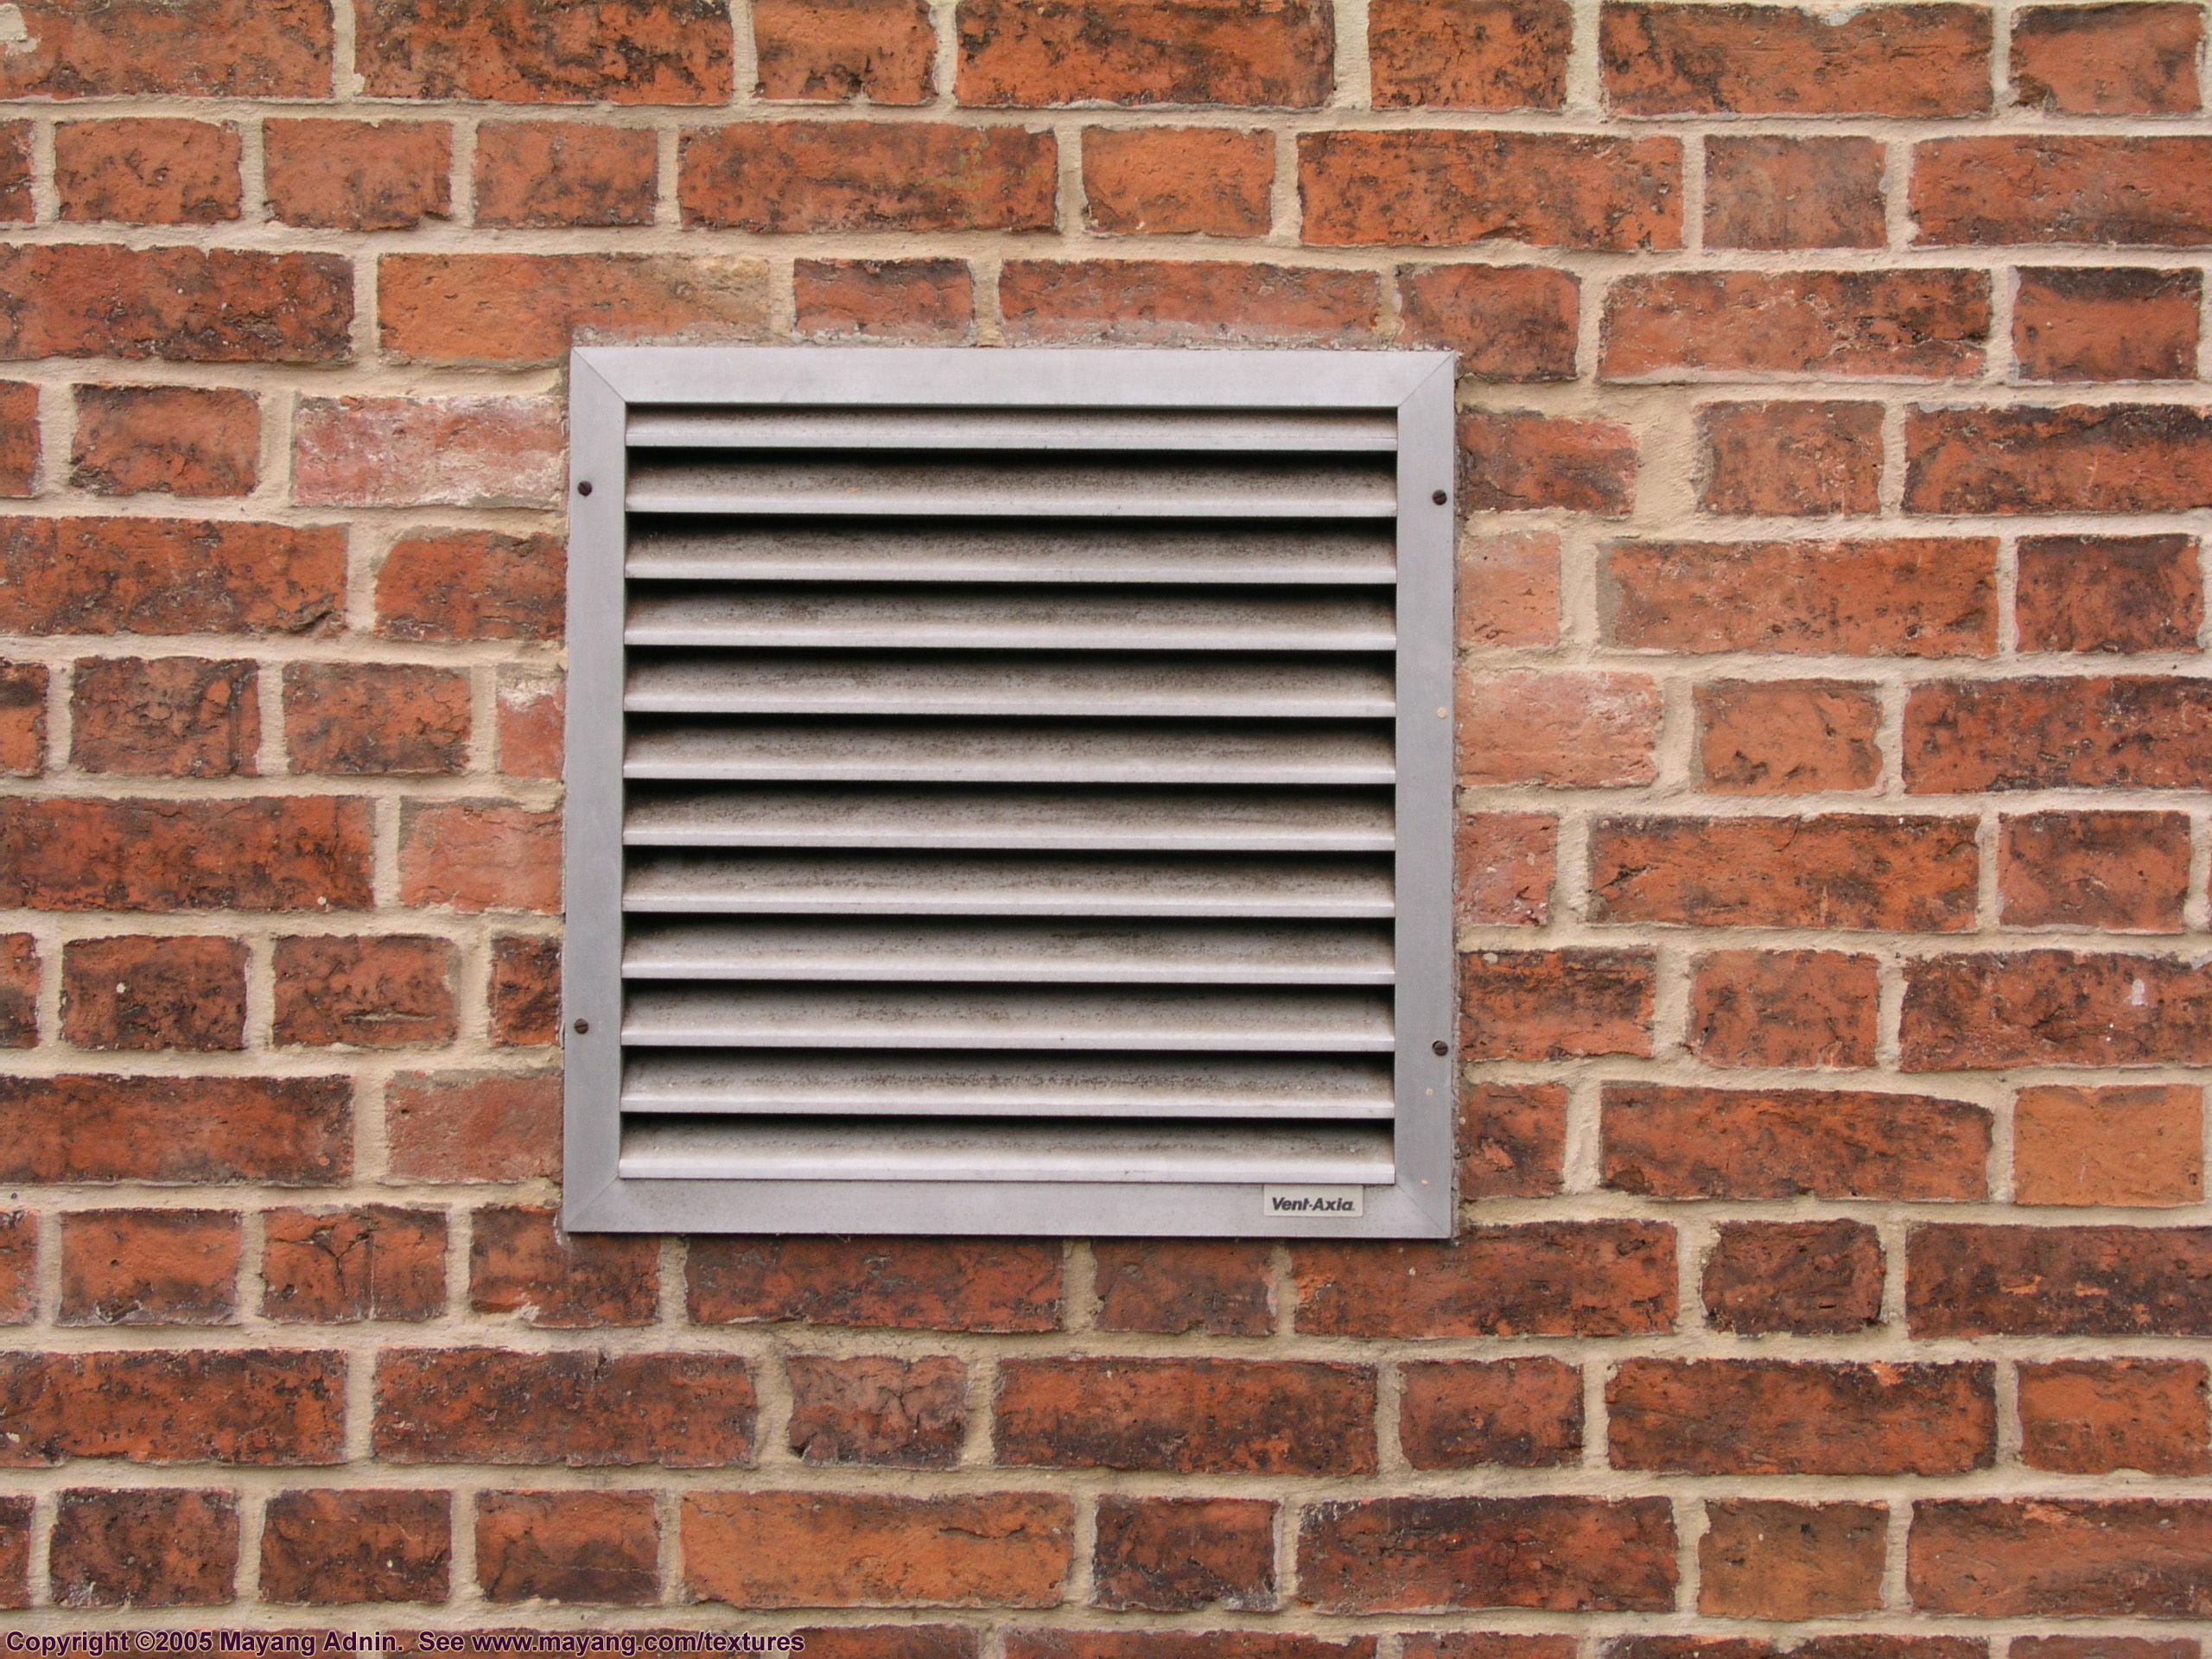 outdoor bathroom vent cover%0A air vent covers to block air